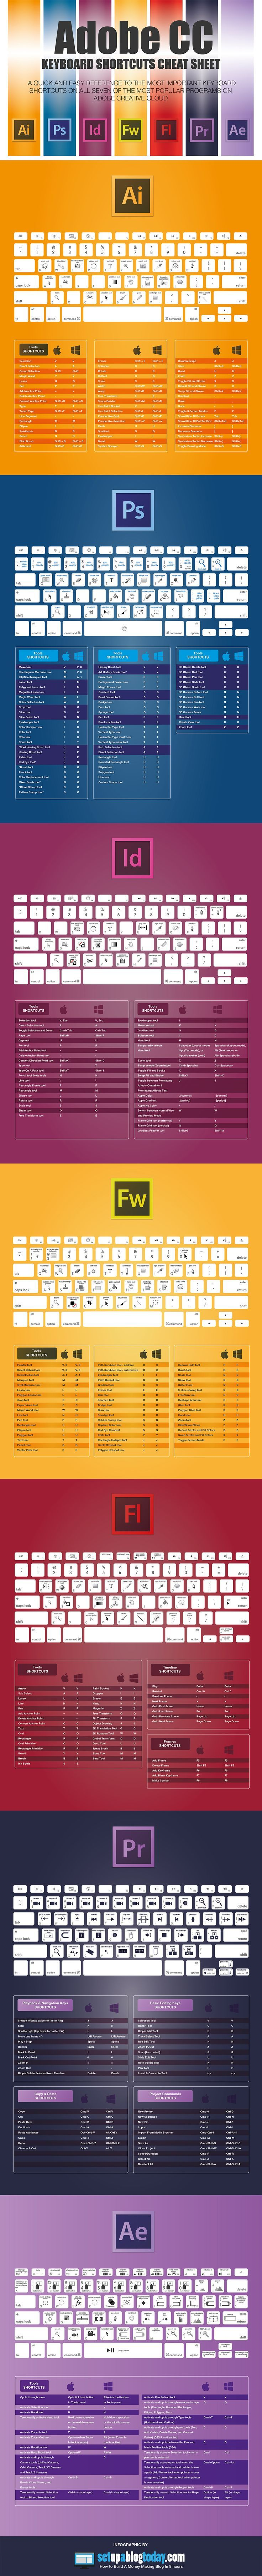 Adobe Creative Cloud: Alle Shortcuts für Photoshop, Illustrator, Premiere Pro und Co. auf einem Blick. (Infografik: http://Setupablogtoday.com)